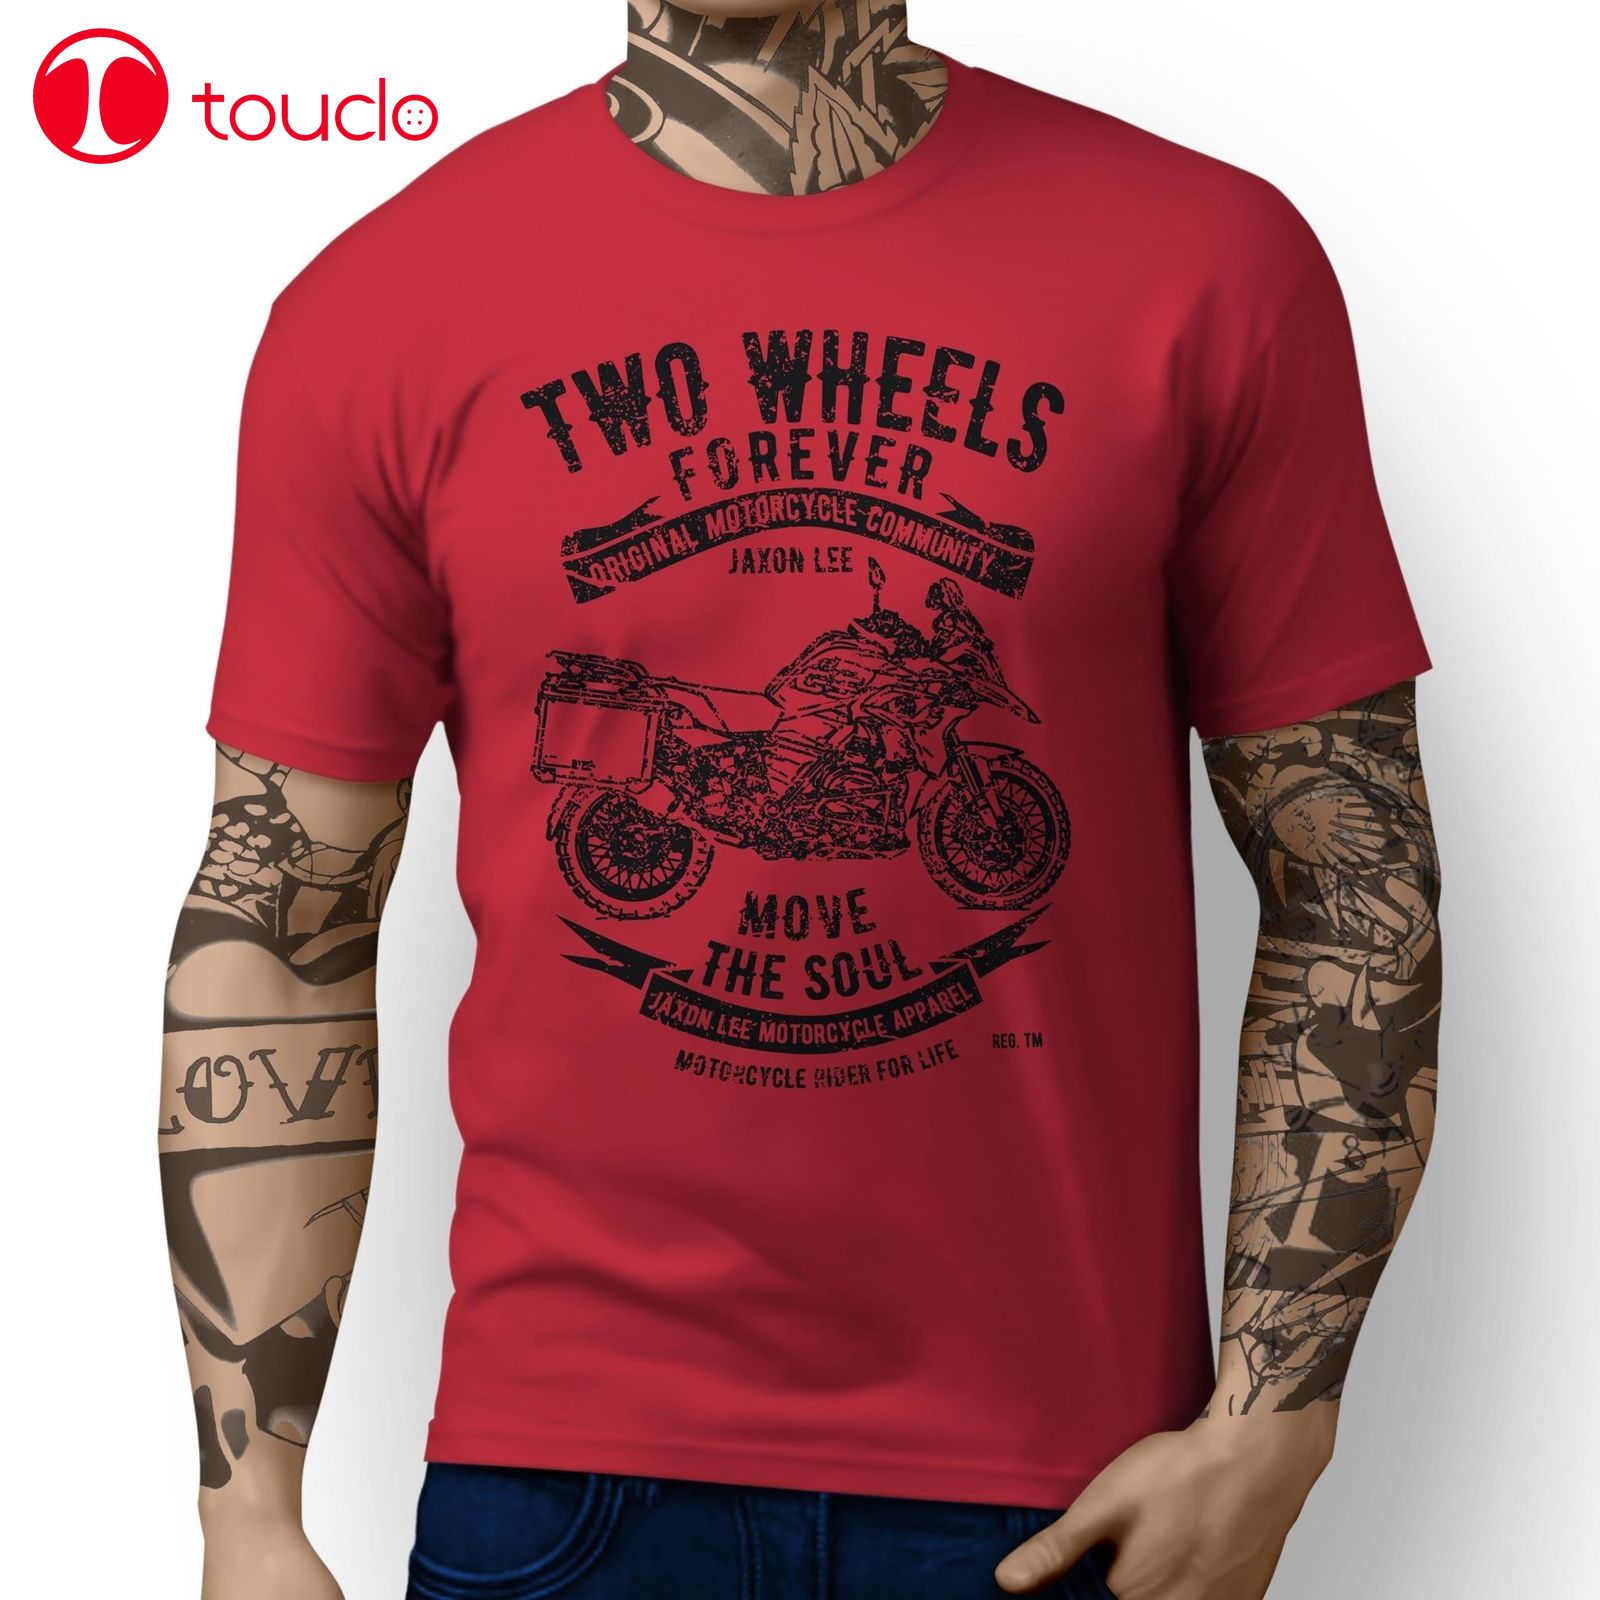 US $7.99 20% OFF|2019 Free Shipping Germany Classic Motorbike R1200Gs 2017 Inspired Motorcycle Art Design T Shirts Tee Shirt Hoodies in T Shirts from